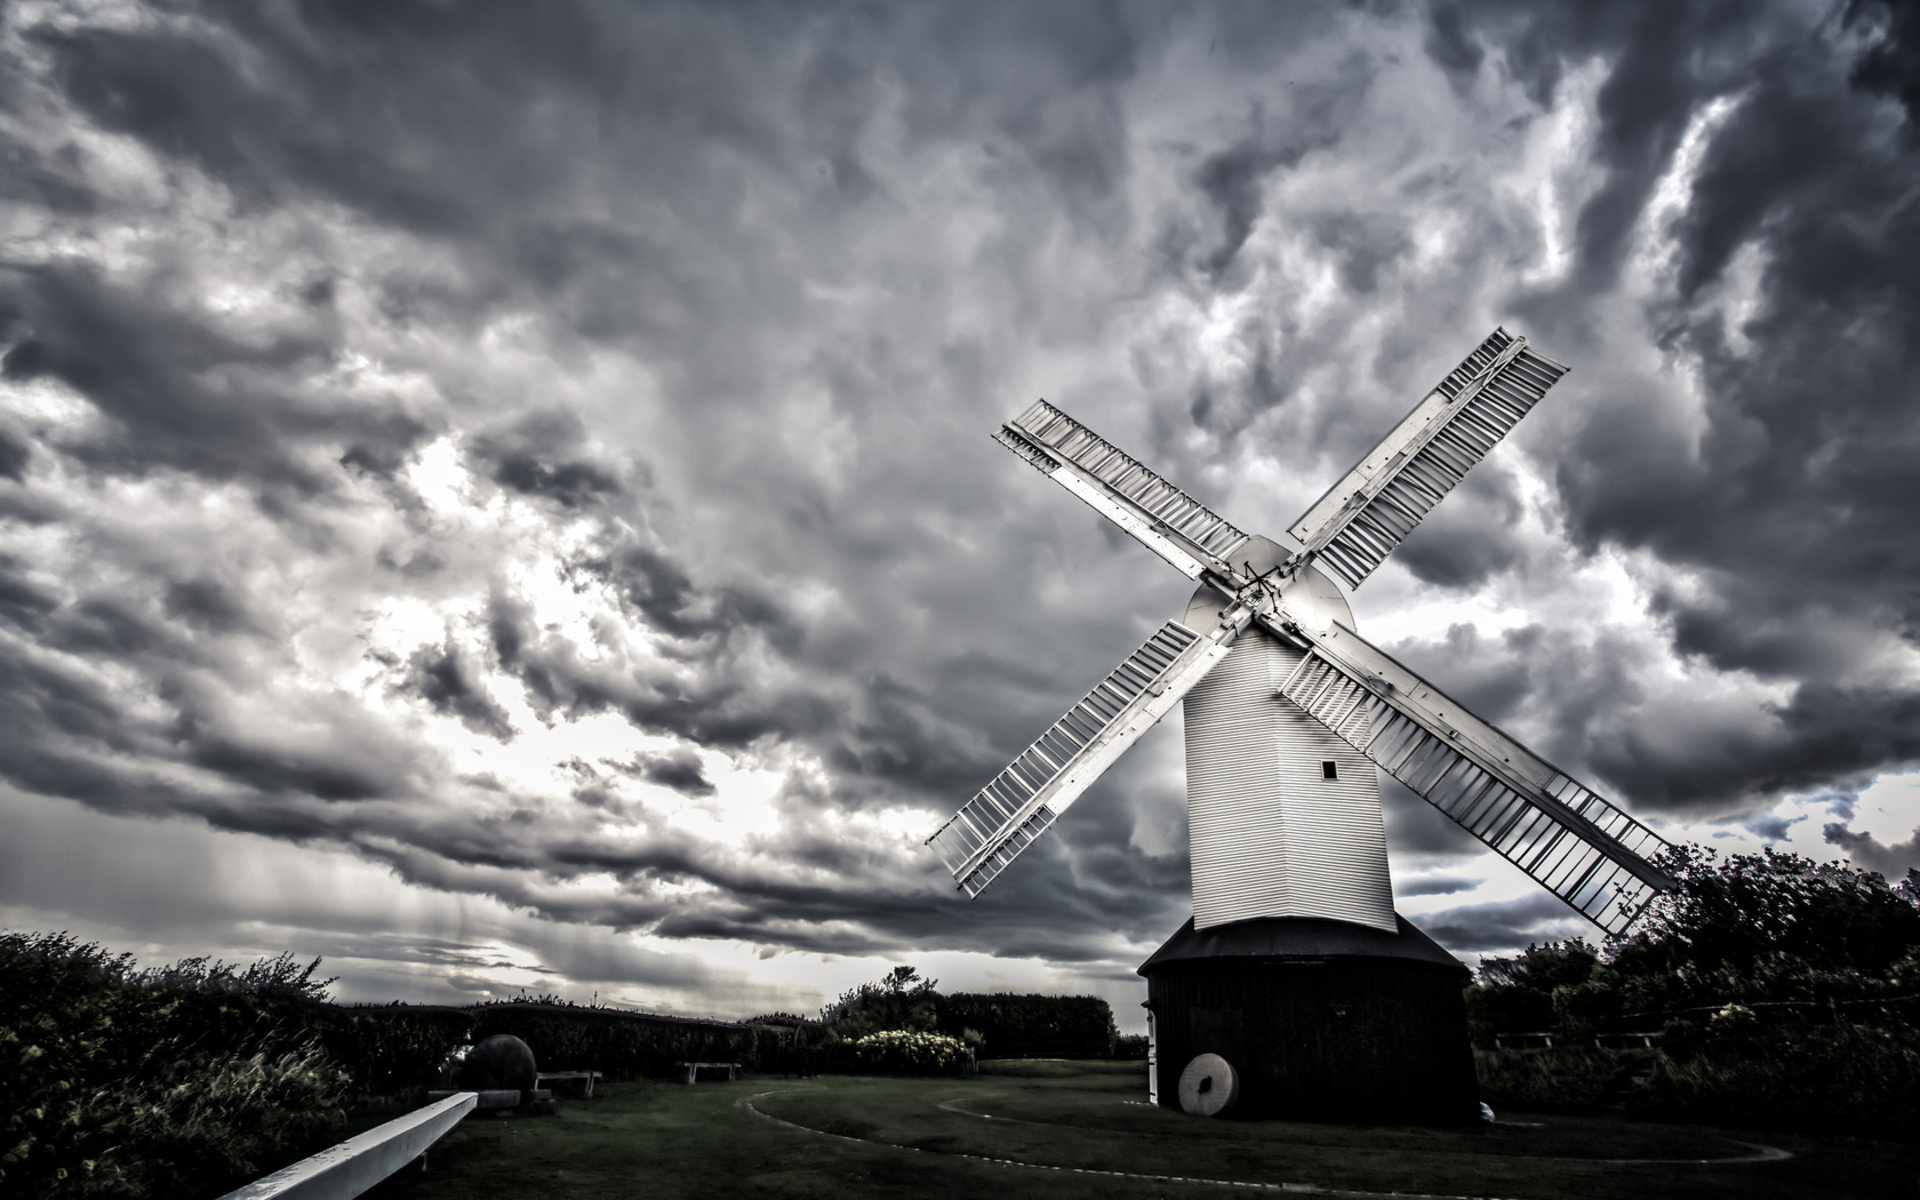 windmill world architecture sail wind buildings fence nature landscapes sky clouds hdr black white monochrome